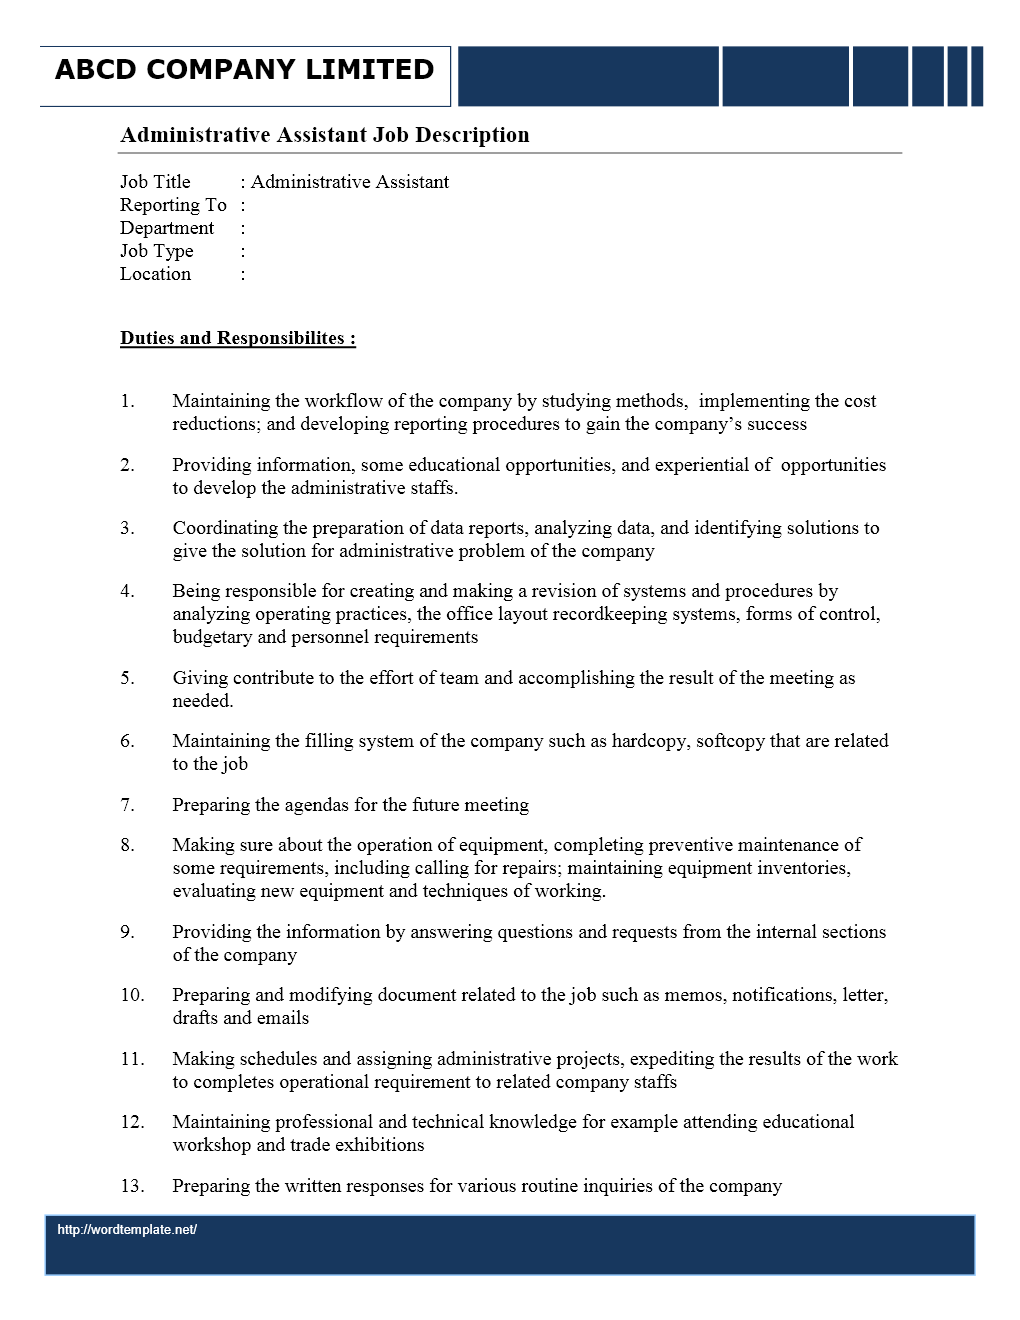 administrative assistant job description wordtemplates net job description administrative assistant